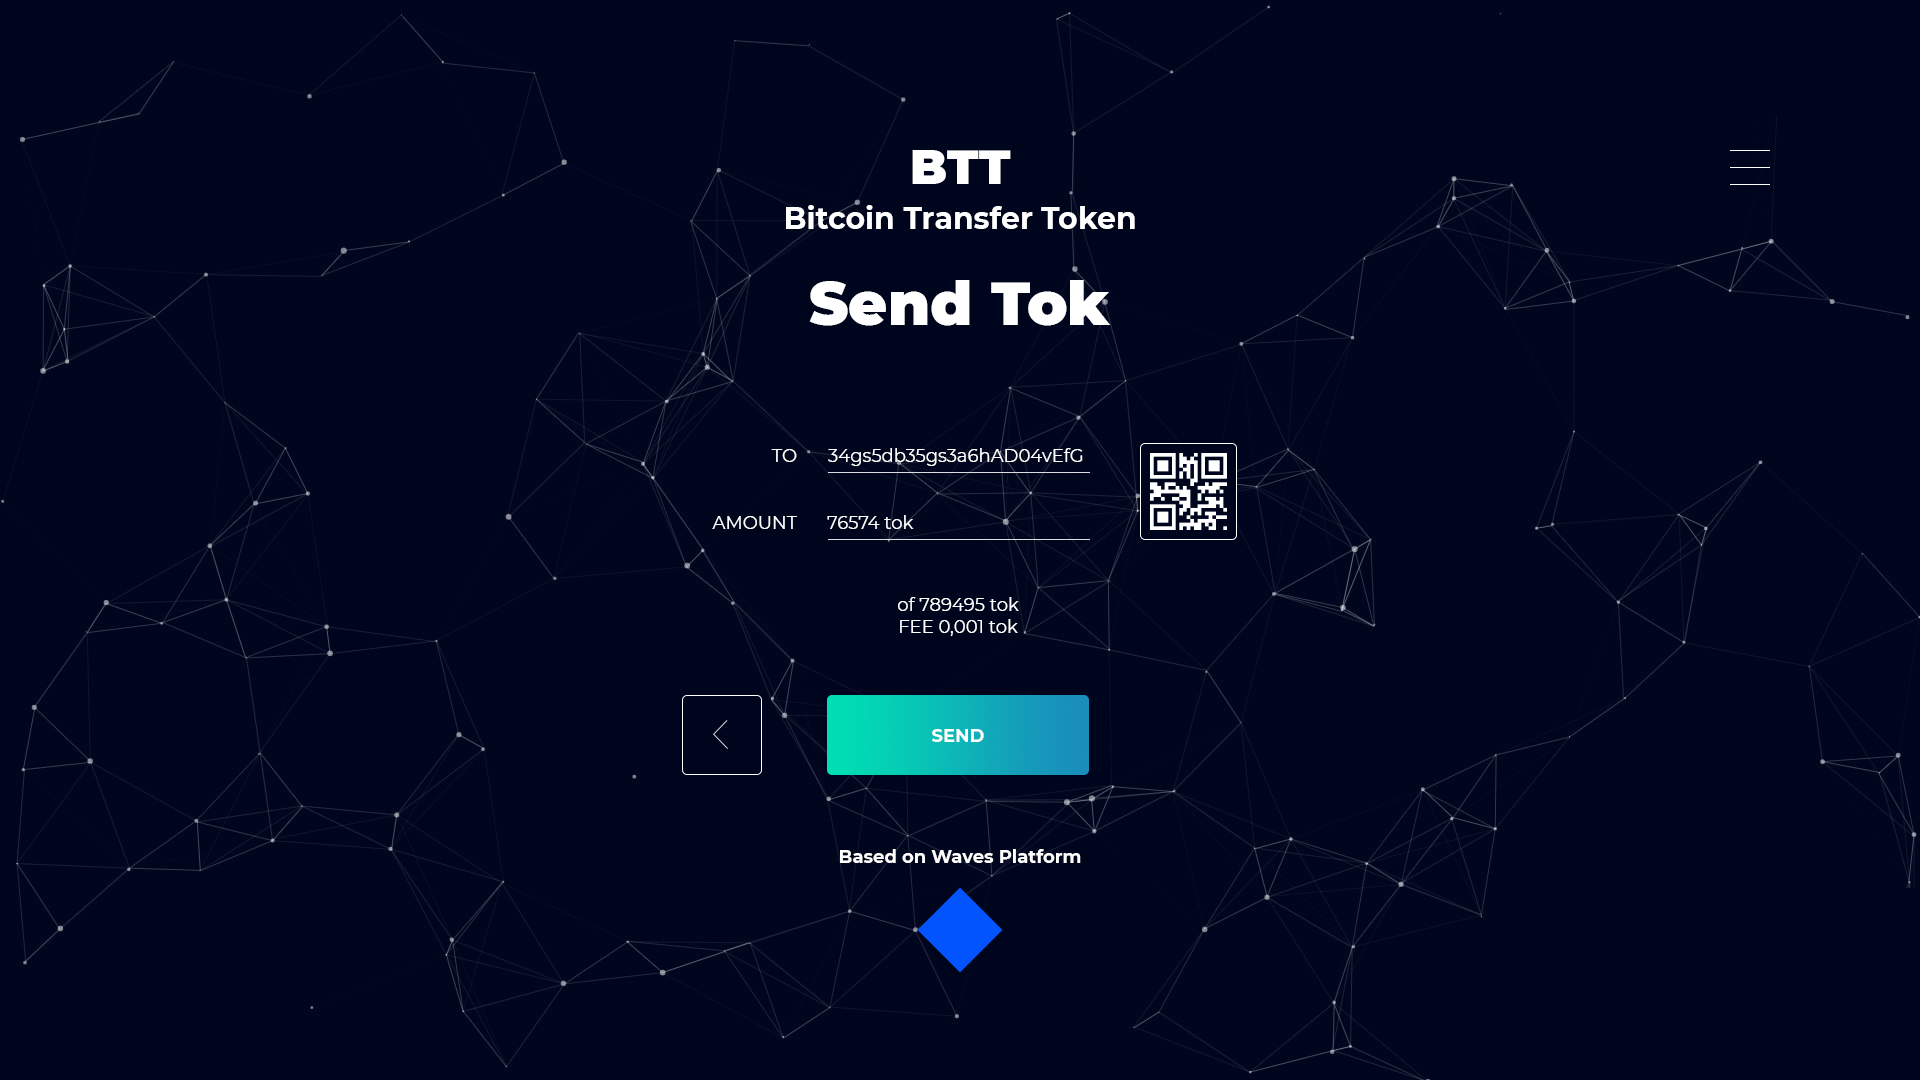 BITCOIN TRANSFER TOKEN